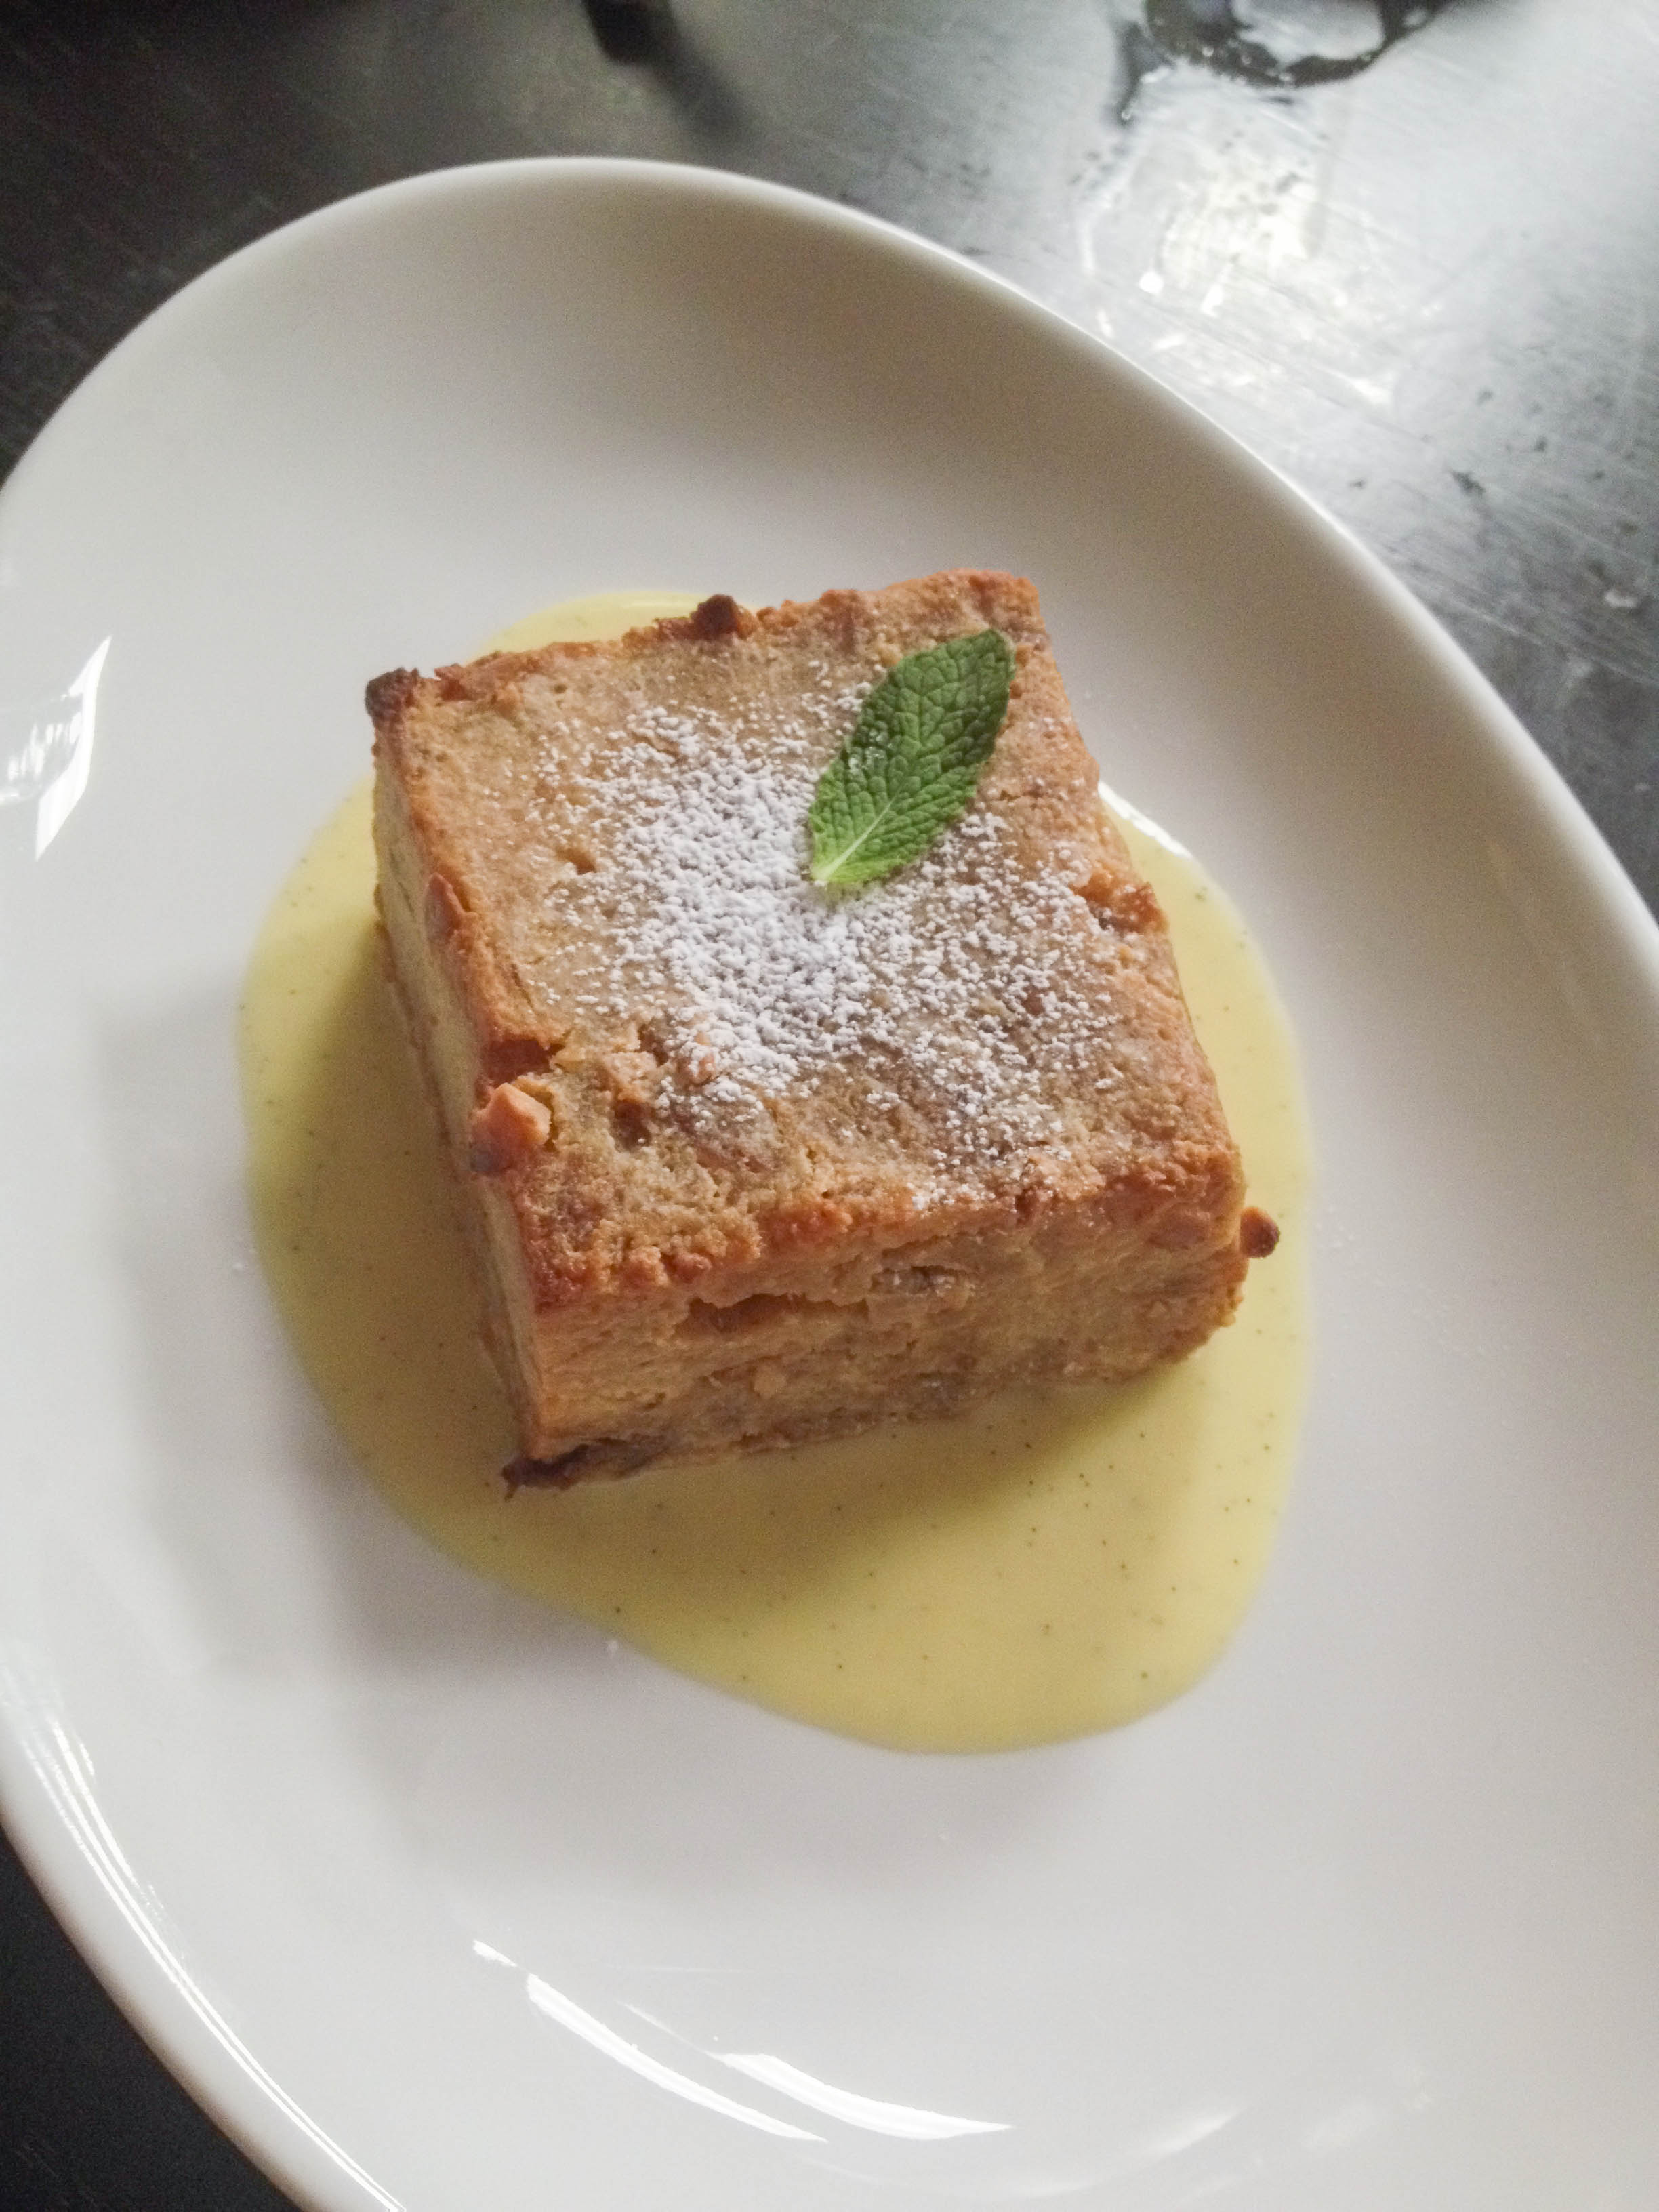 Caramelized banana bread pudding with vanilla bean creme anglaise.